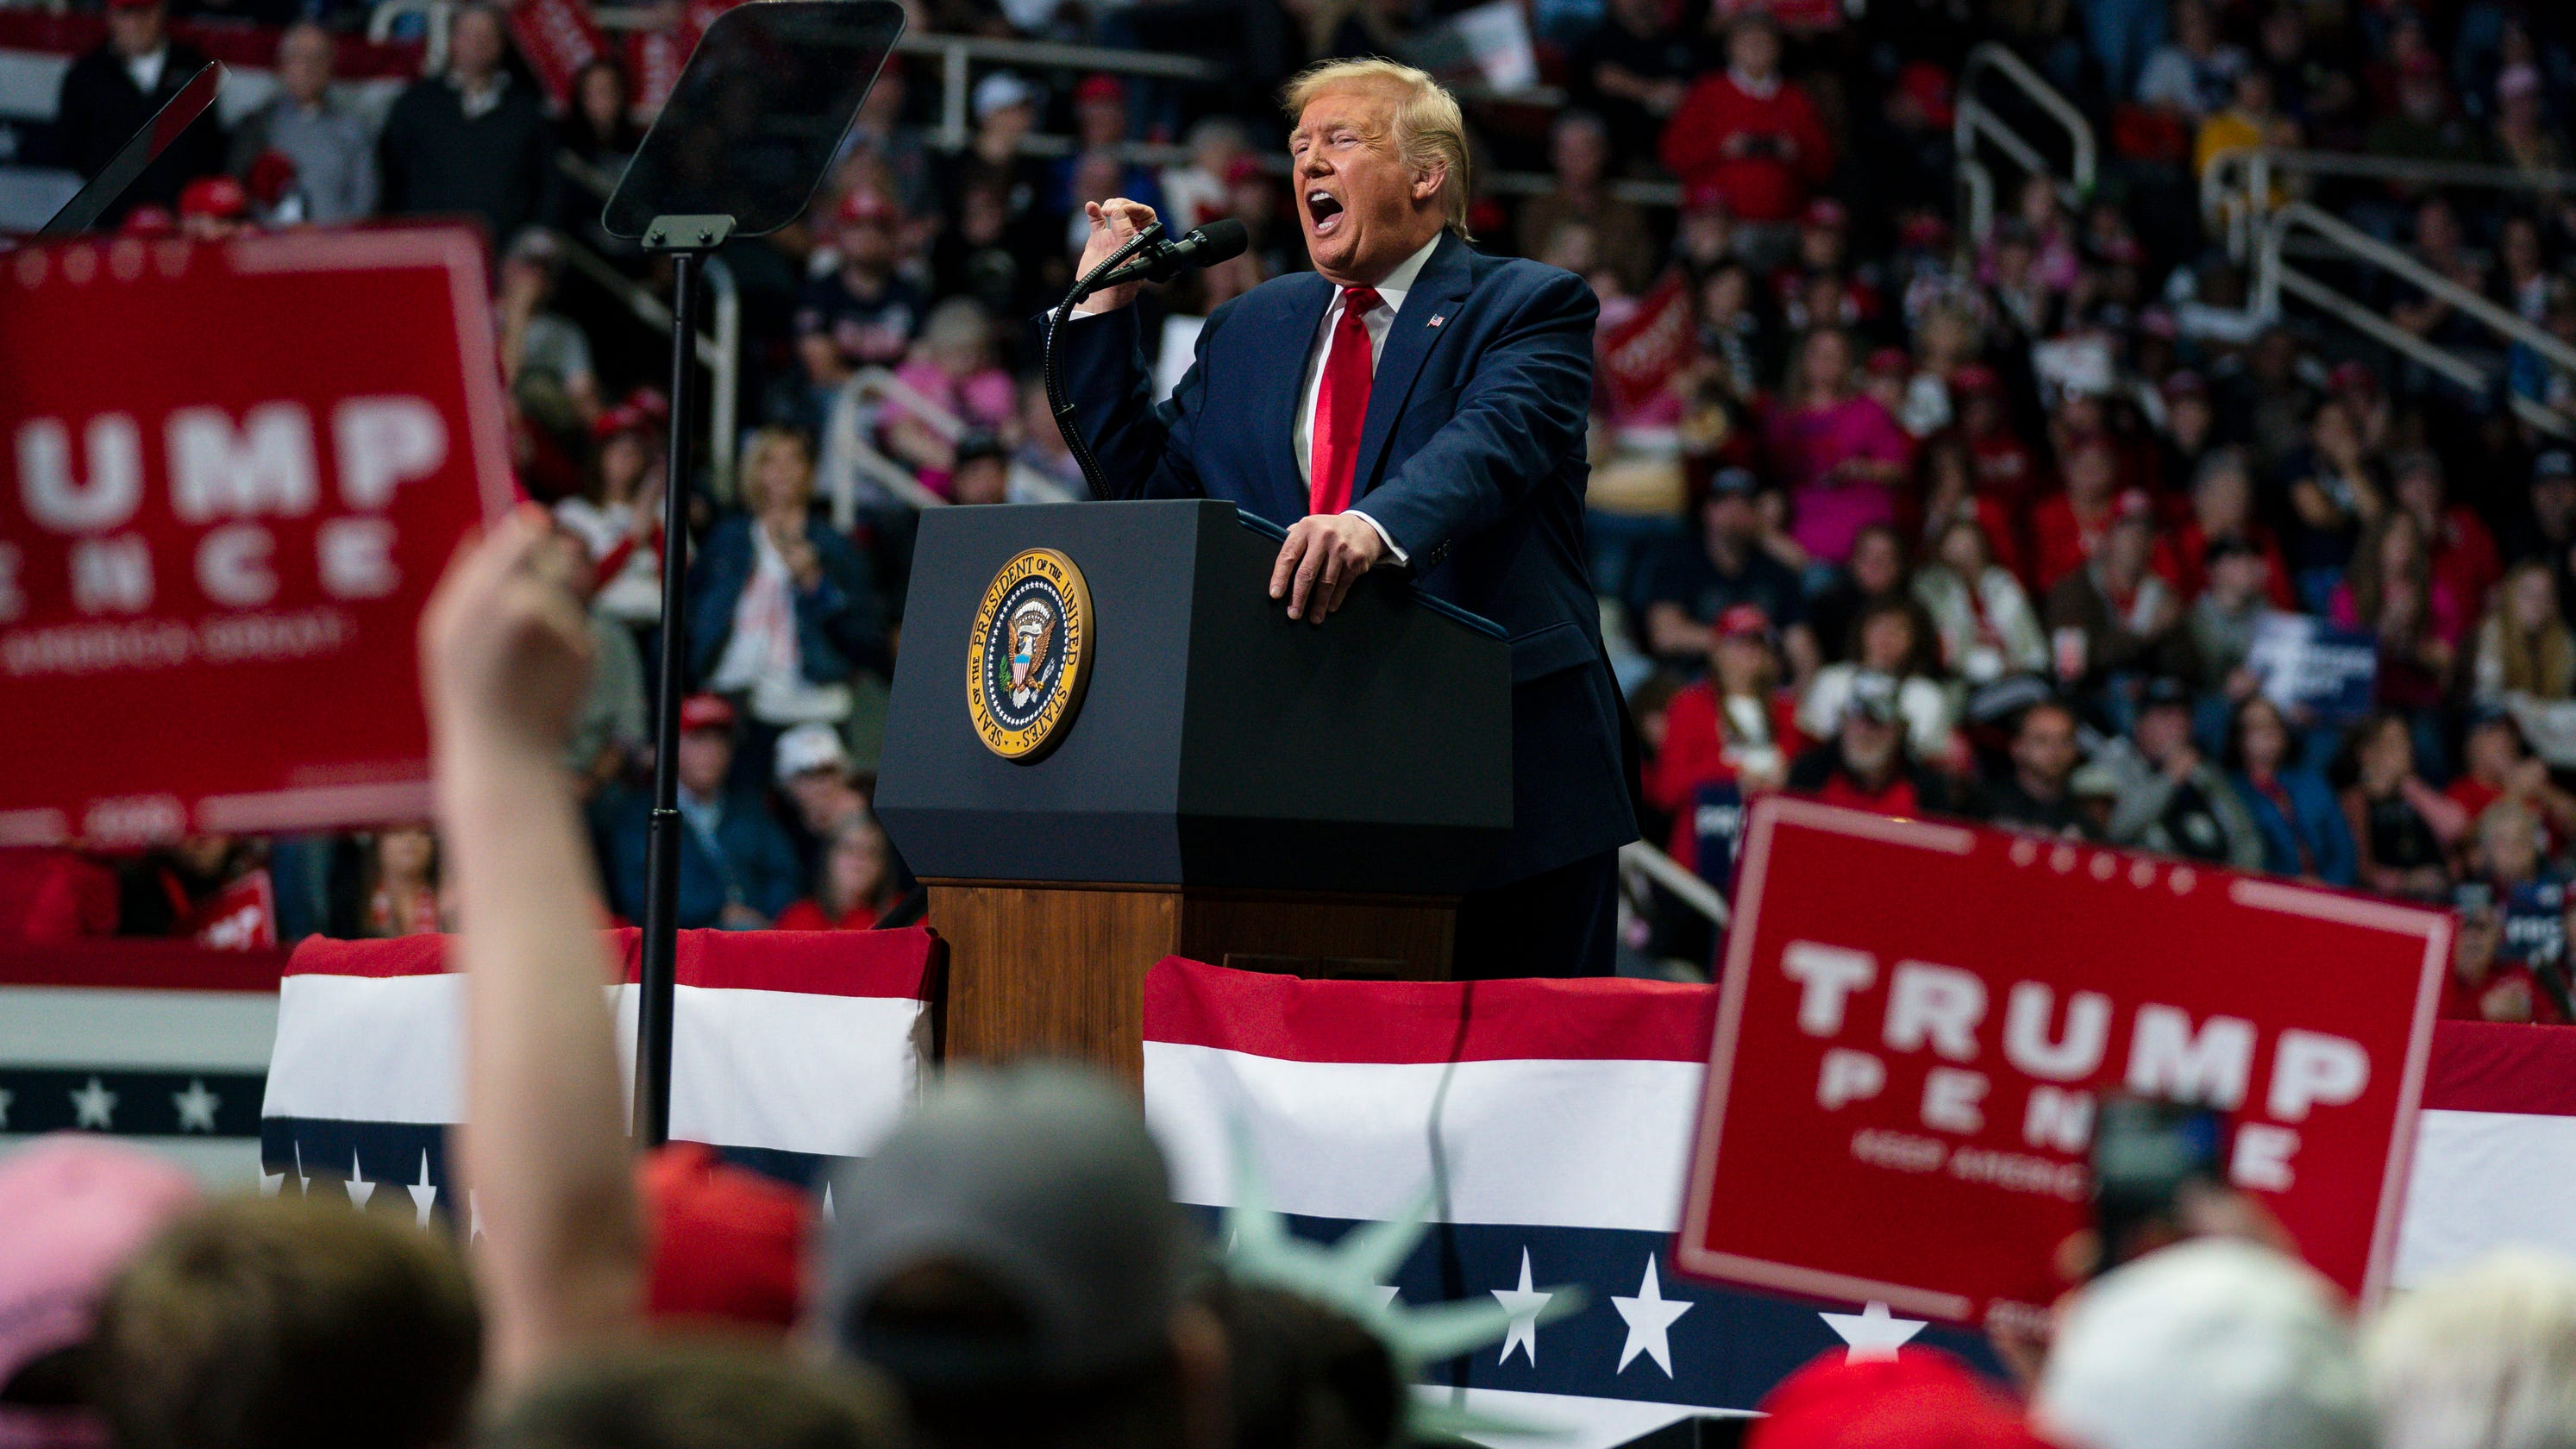 'Turning point' or massive risk? Trump gambles with a rally in Tulsa that could shape his campaign thumbnail